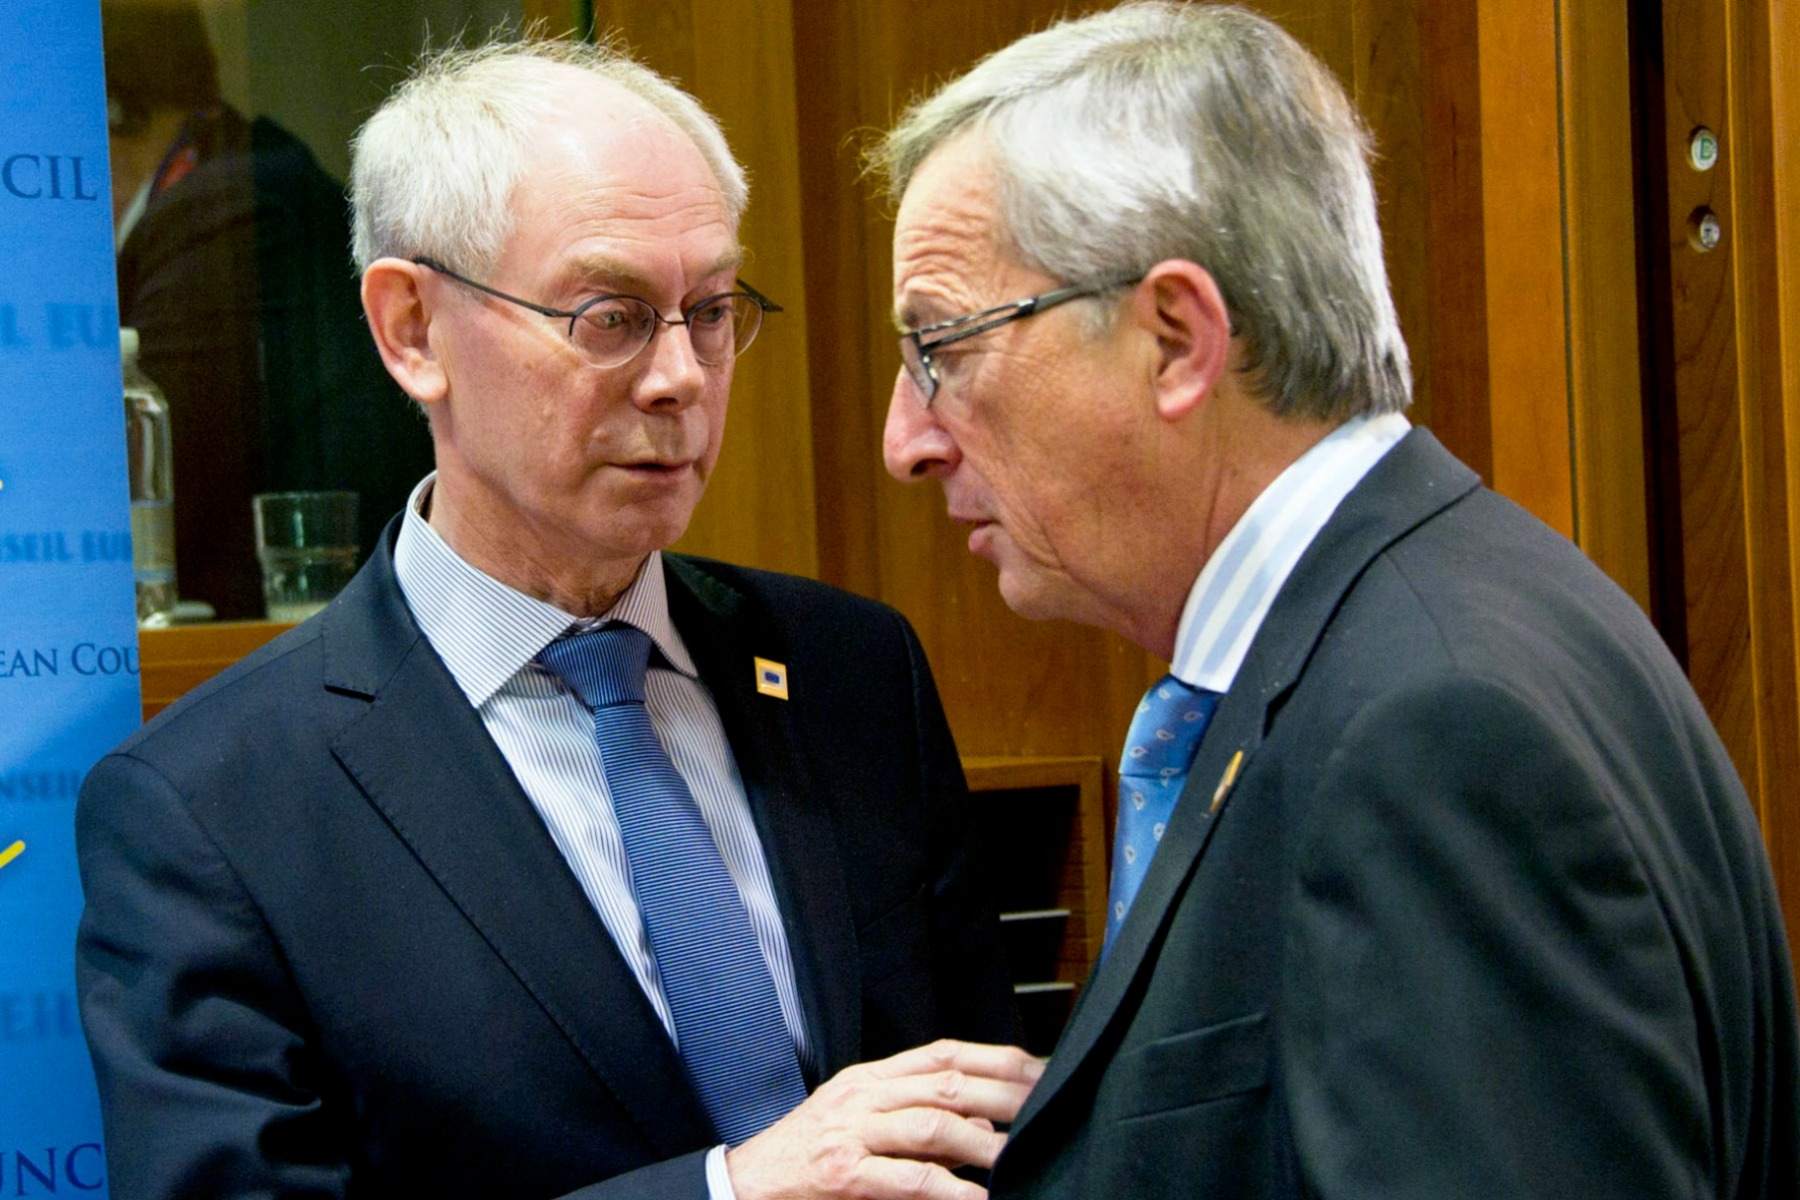 Herman Van Rompuy and Jean-Claude Juncker [European Council]